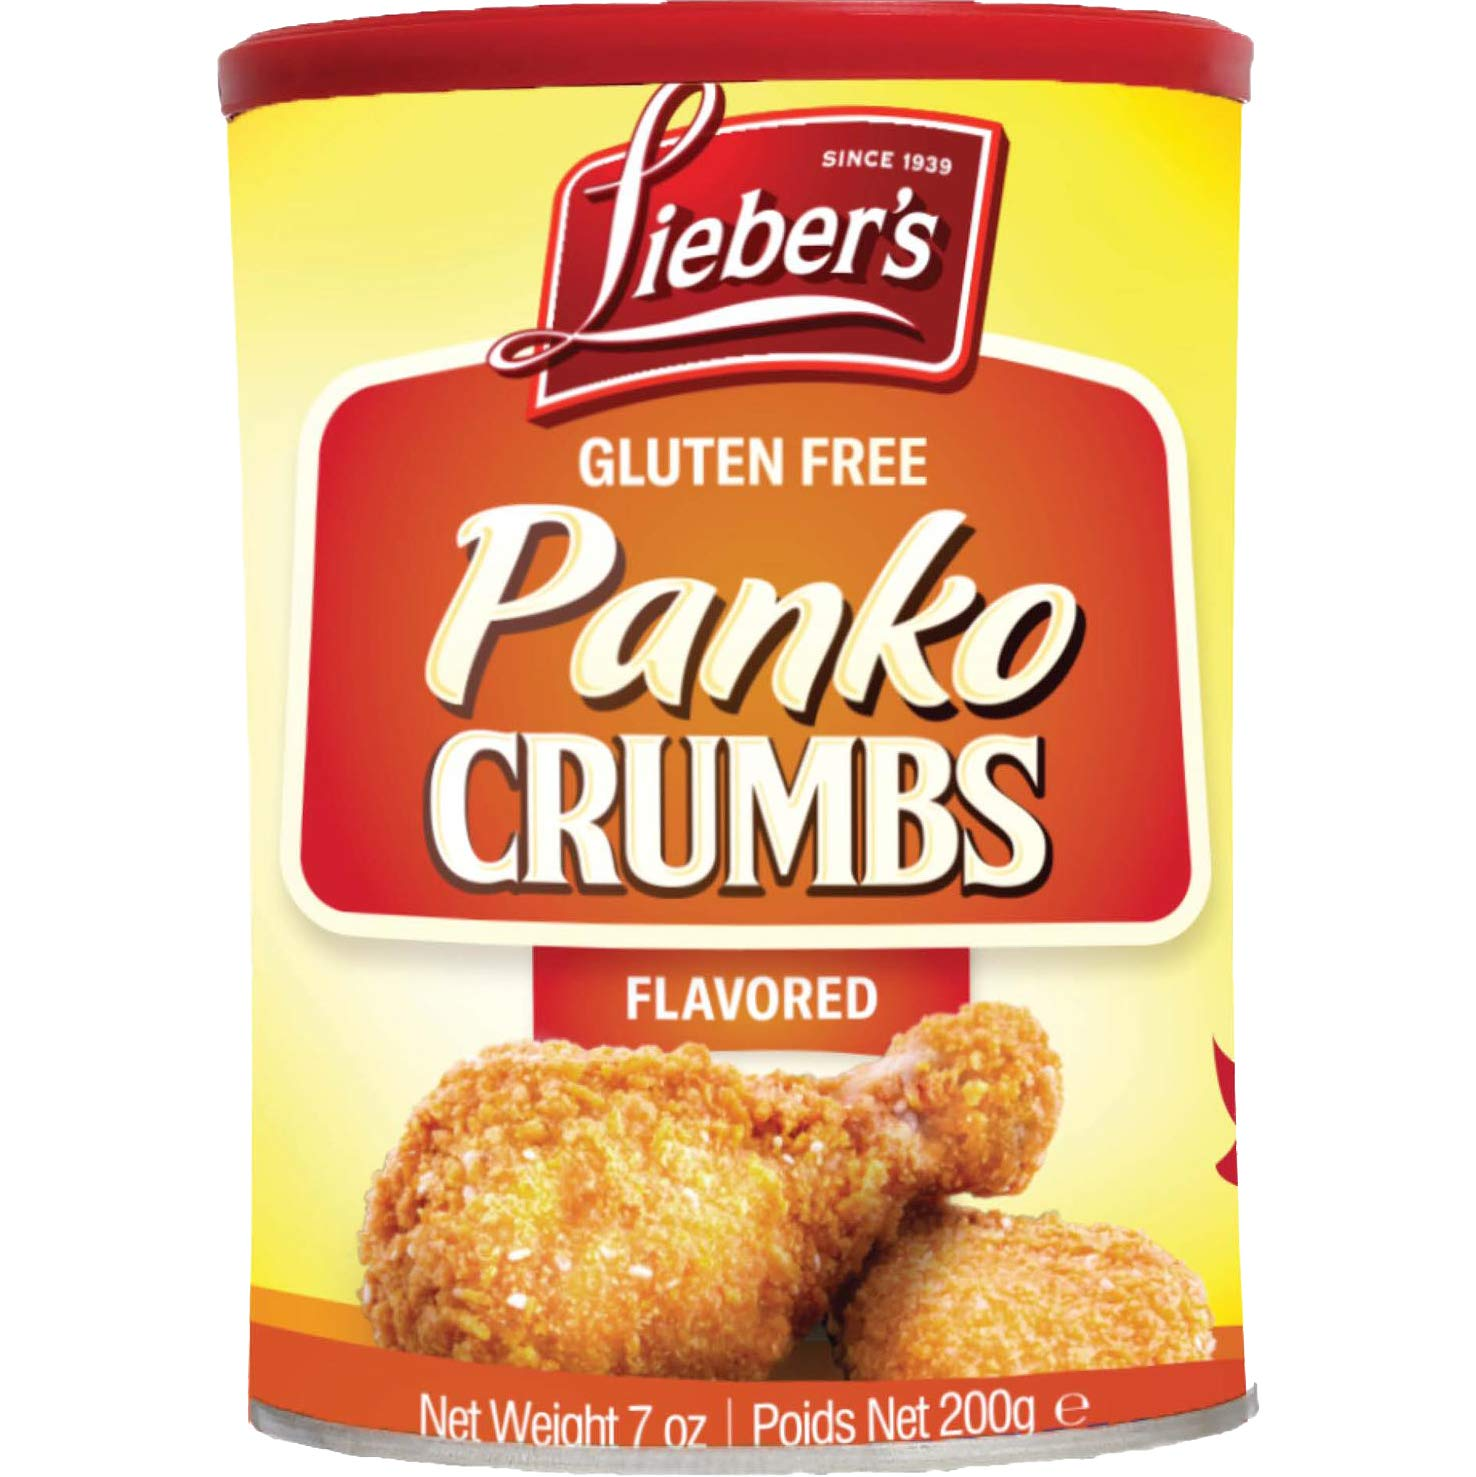 Lieber's Panko Crumbs Flavored, Gluten Free, Kosher For Passover, 7 Ounce Canister (Single)